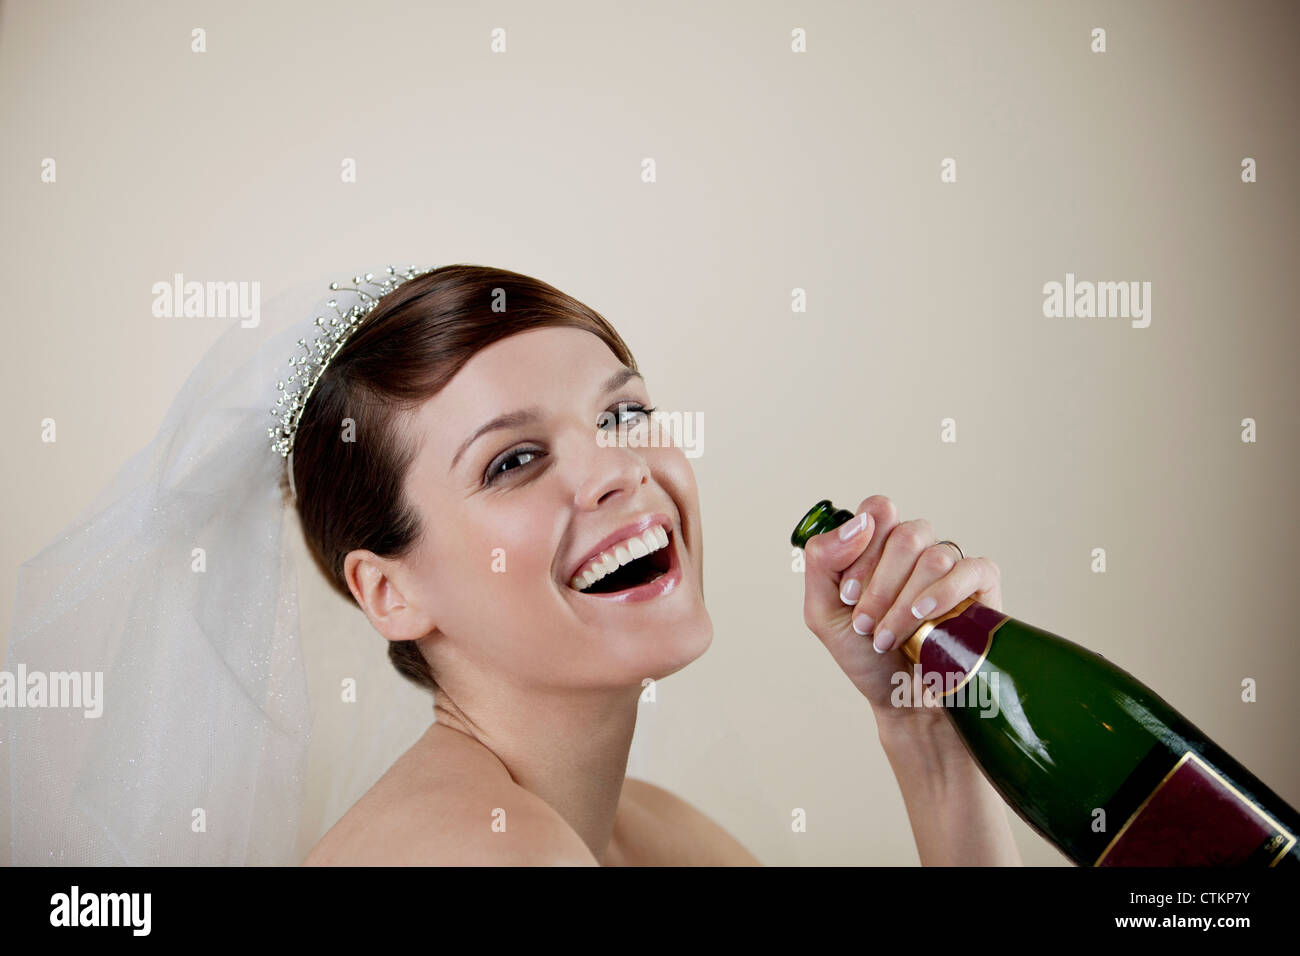 A young bride holding a bottle of champagne - Stock Image